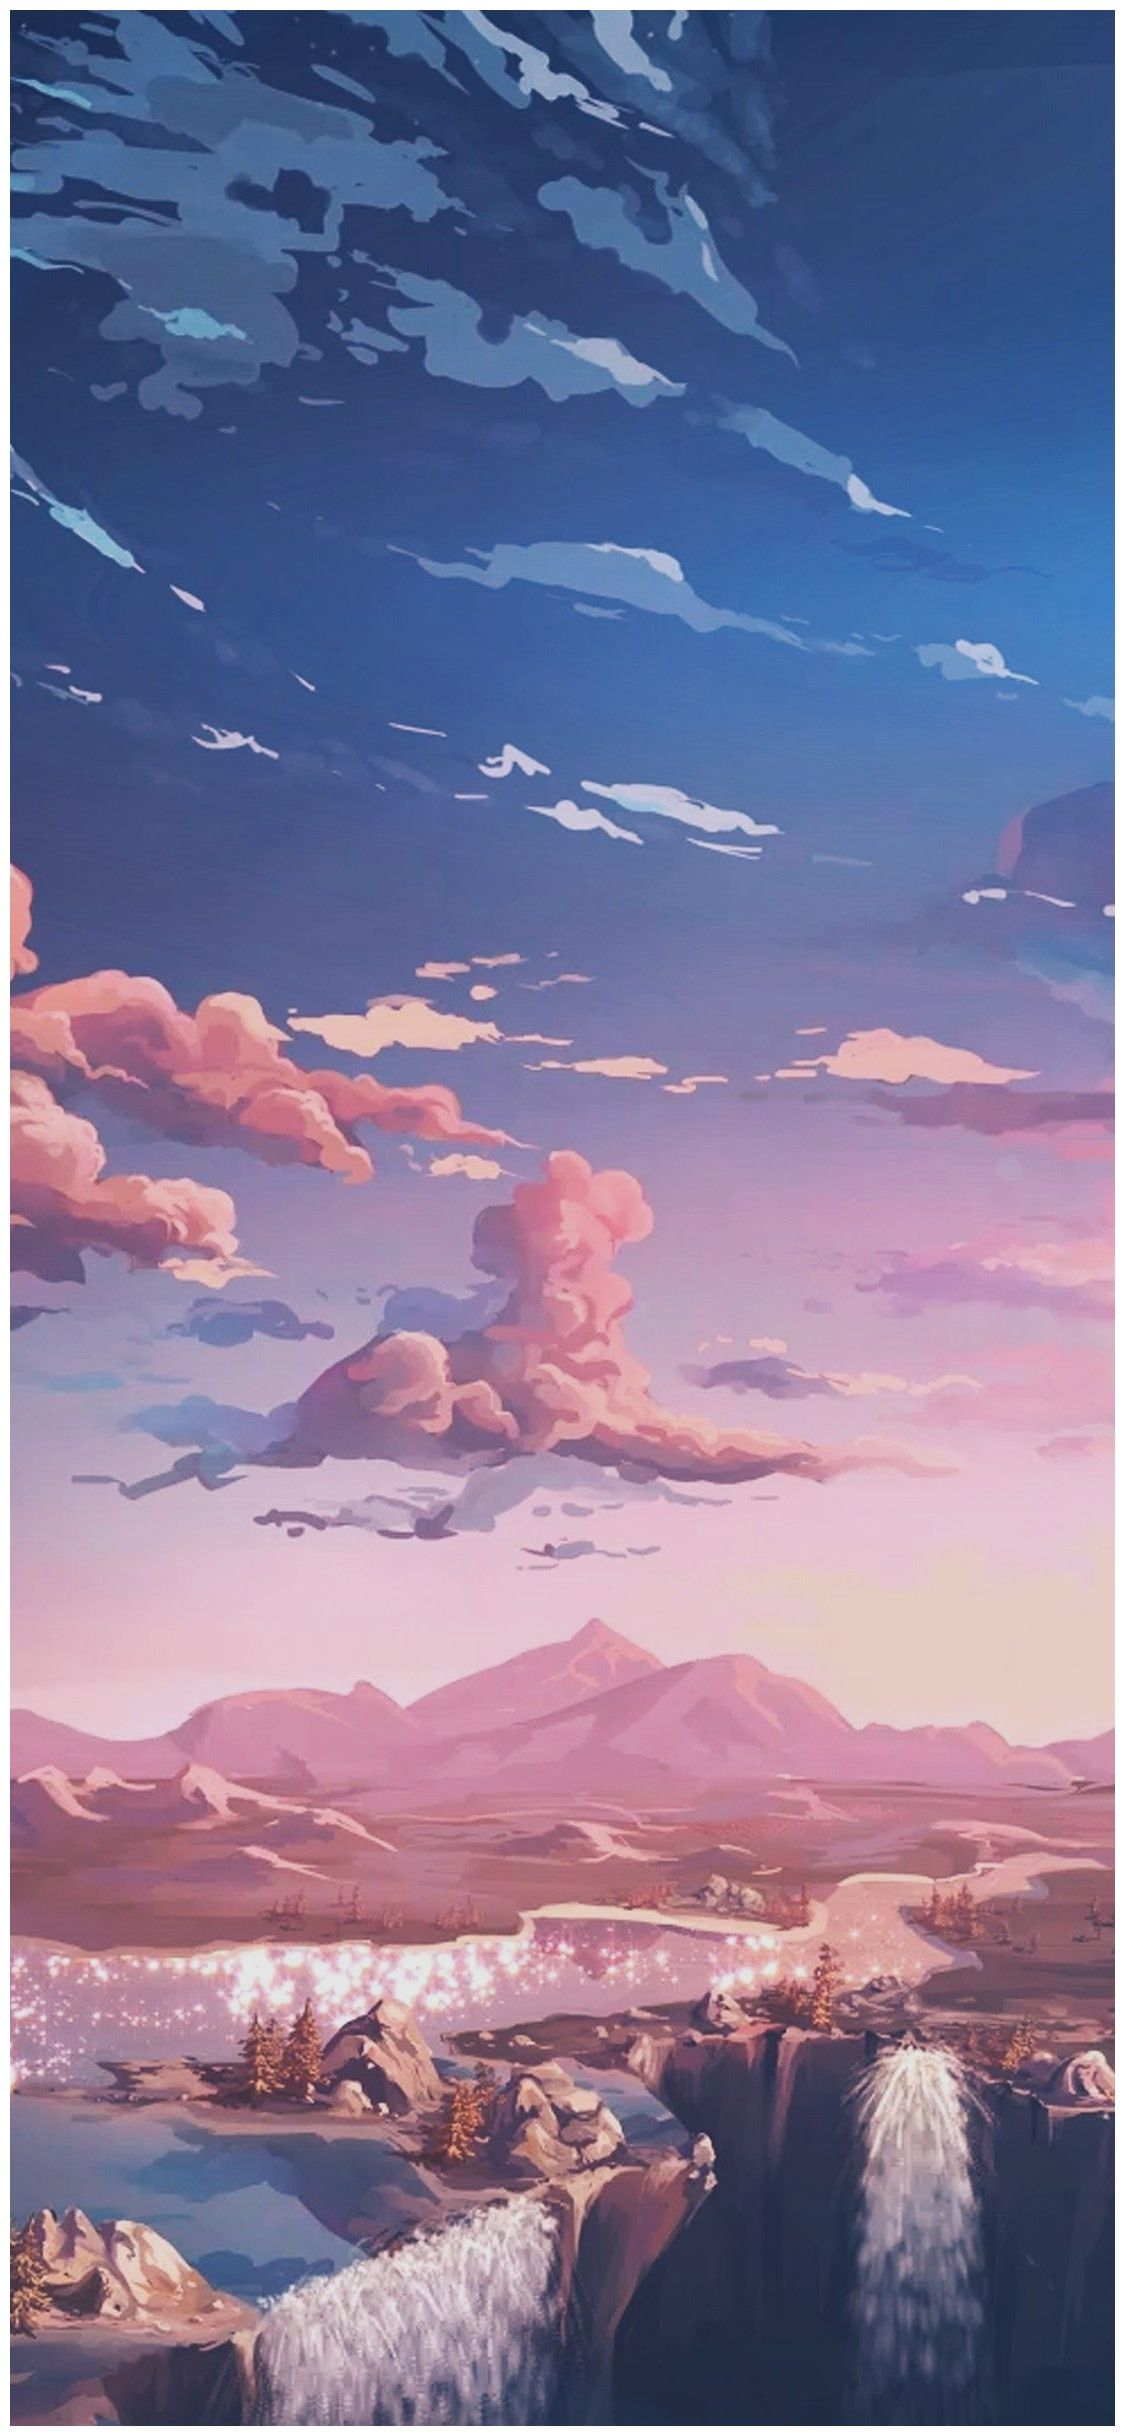 Aesthetic Tumblr Wallpaper Iphone Hd Anime Aesthetic Hd